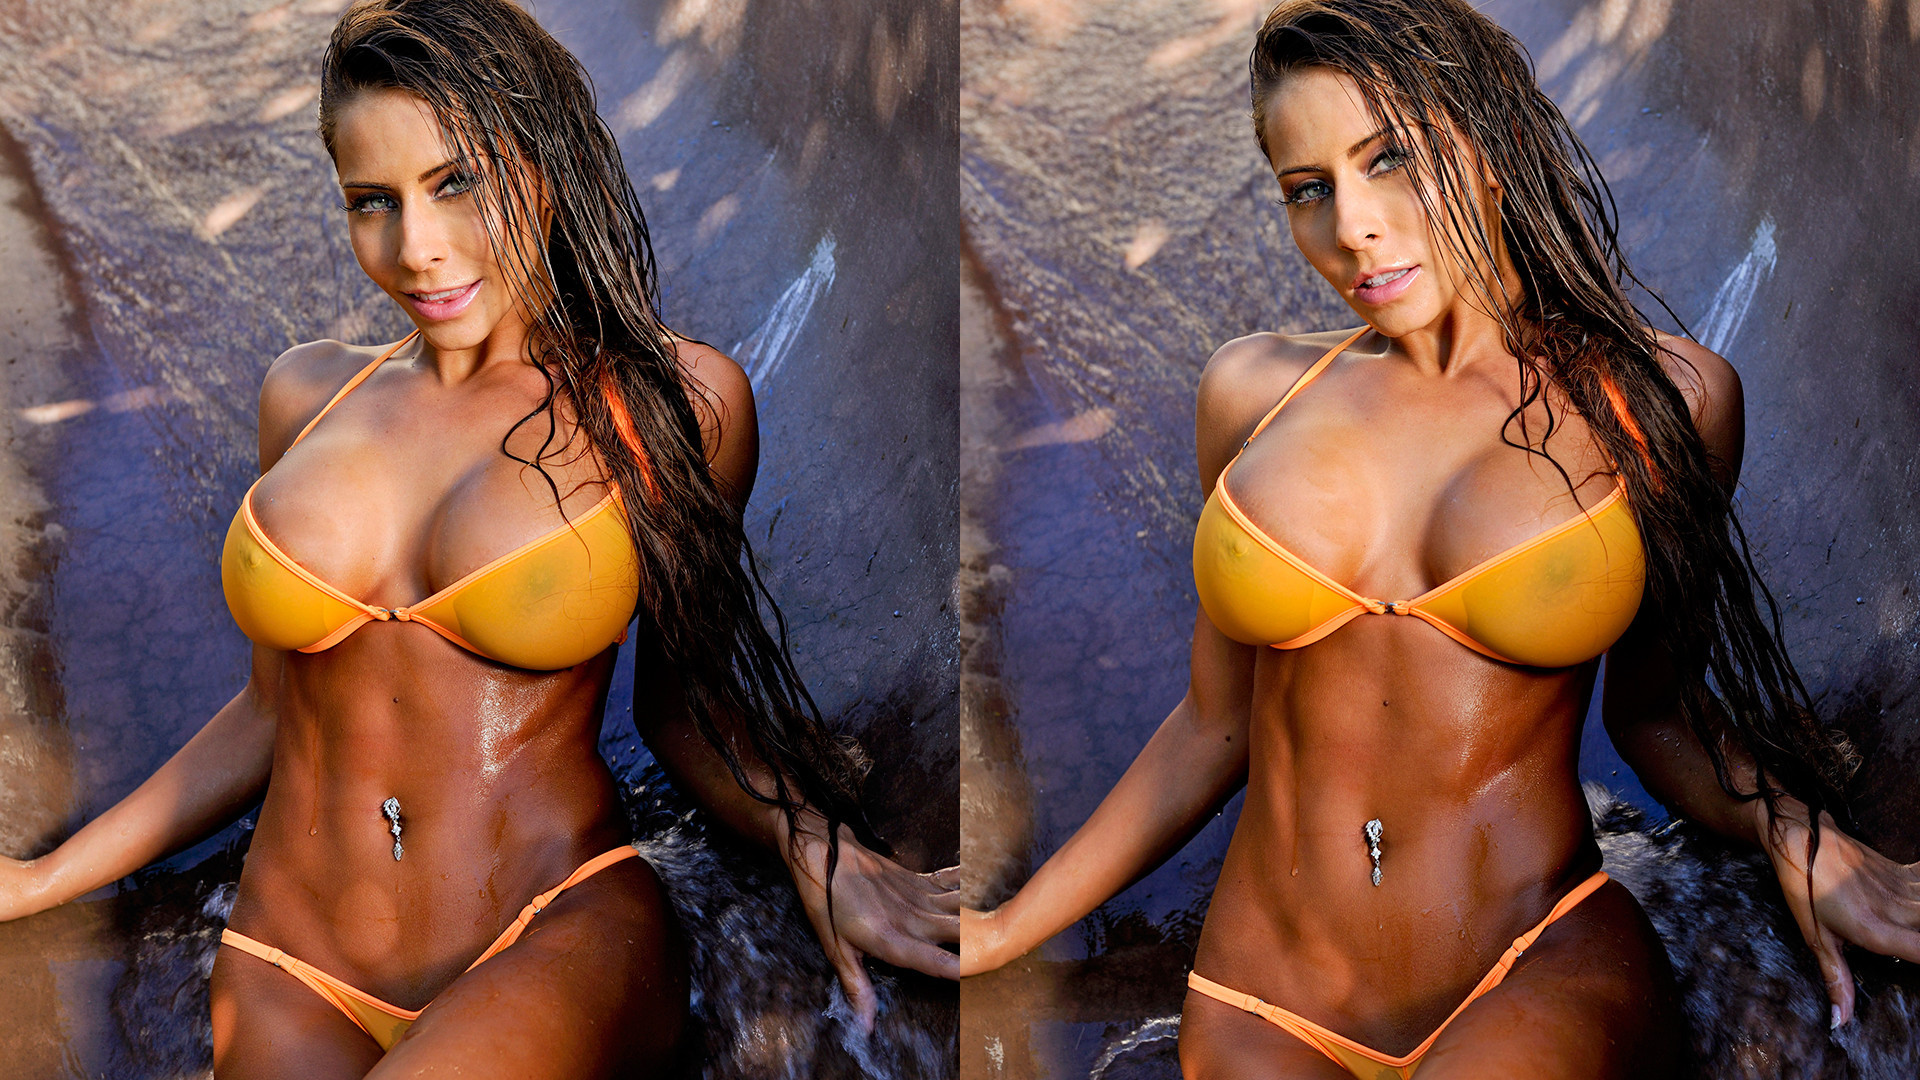 Madison Ivy For Desktop